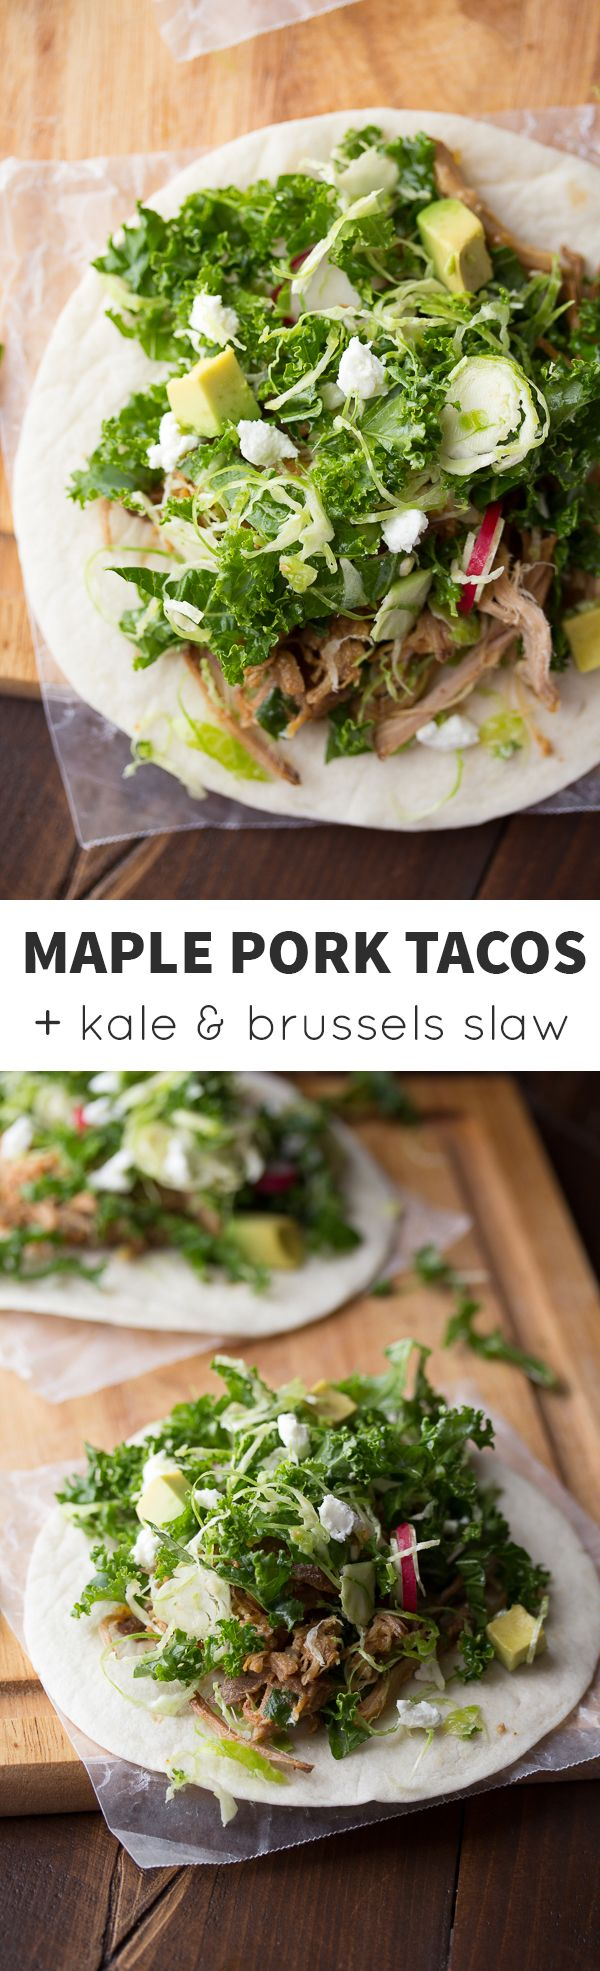 1000+ images about {PORK} on Pinterest | Chipotle, Sauces and Spicy